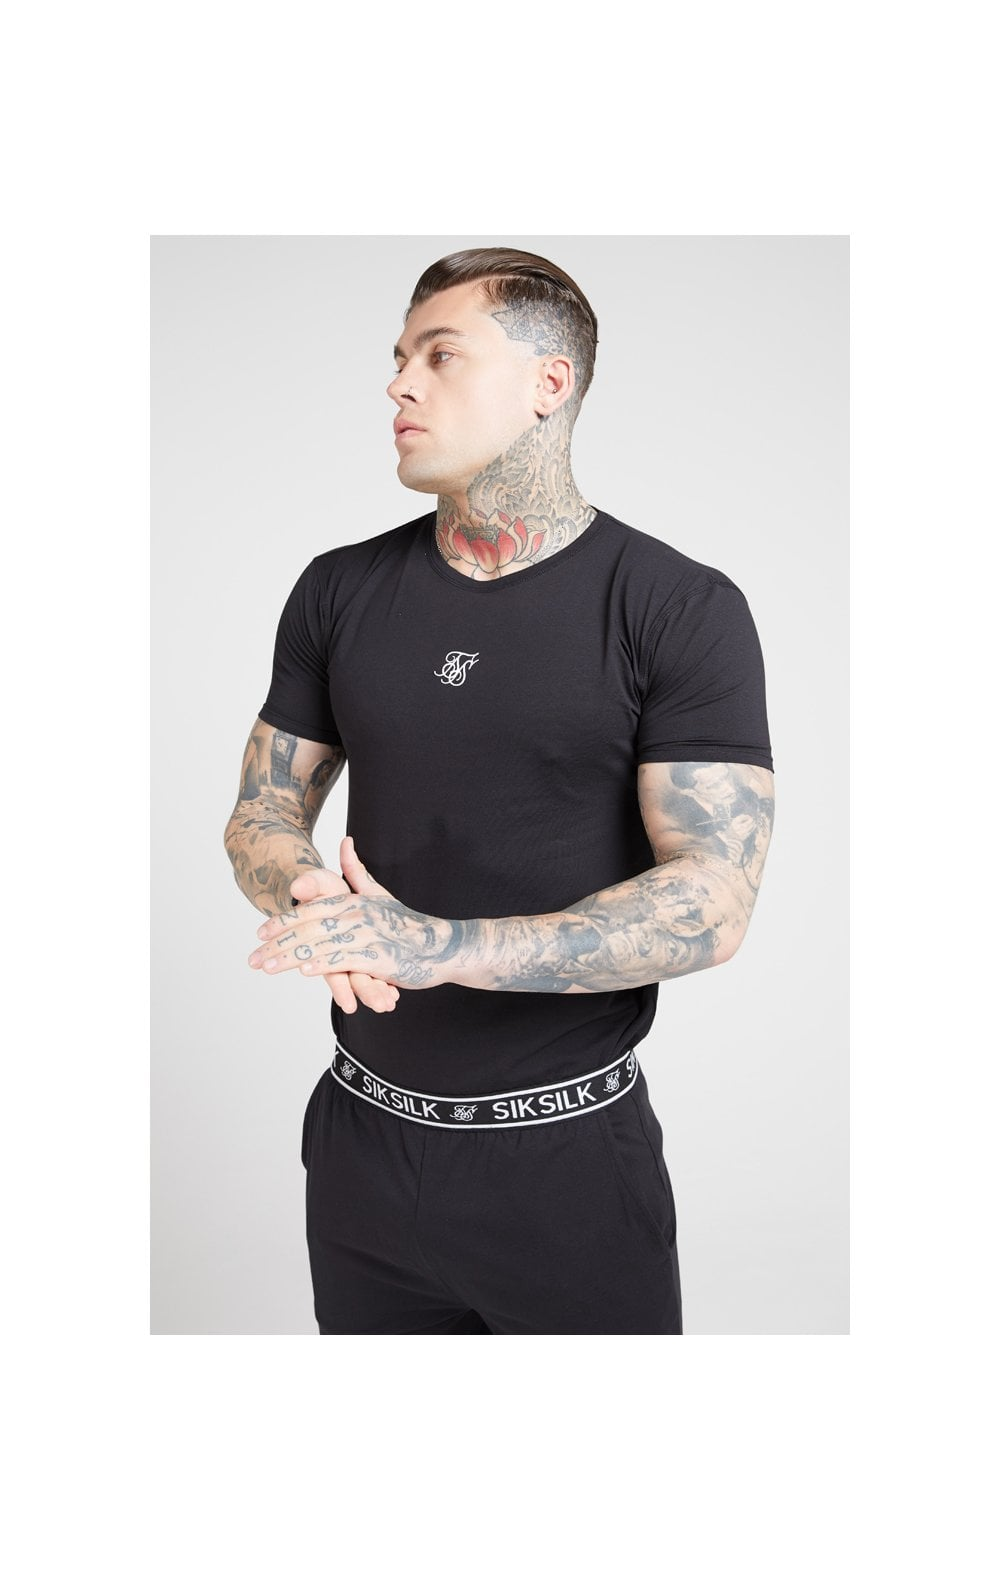 SikSilk Lounge Tee - Black & Grey (2 Pack) - 1 Grey Tee & 1 Black Tee (1)